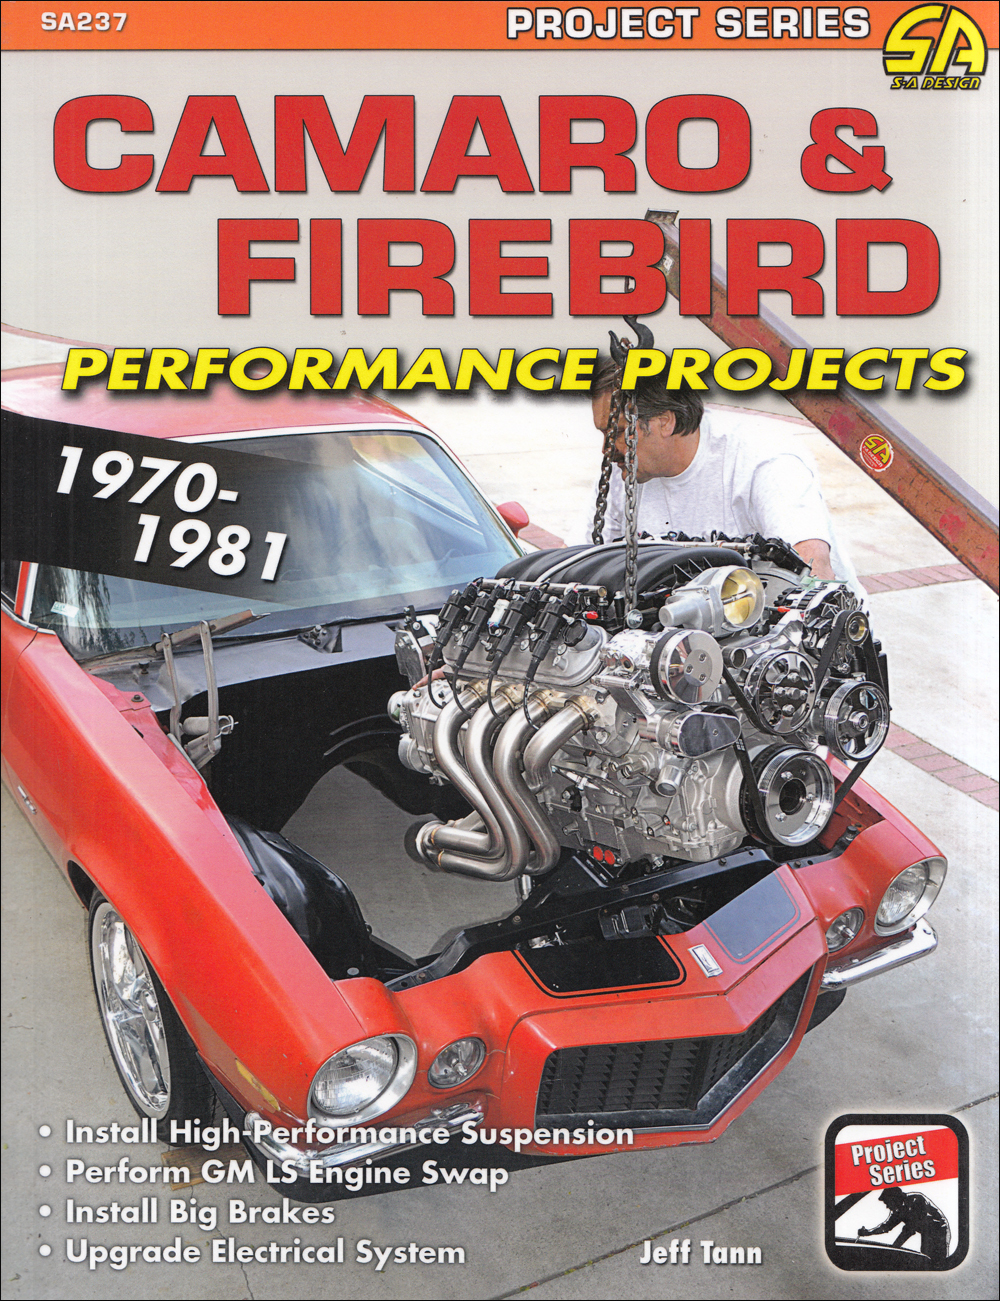 1970-1981 Camaro and Firebird Performance Projects